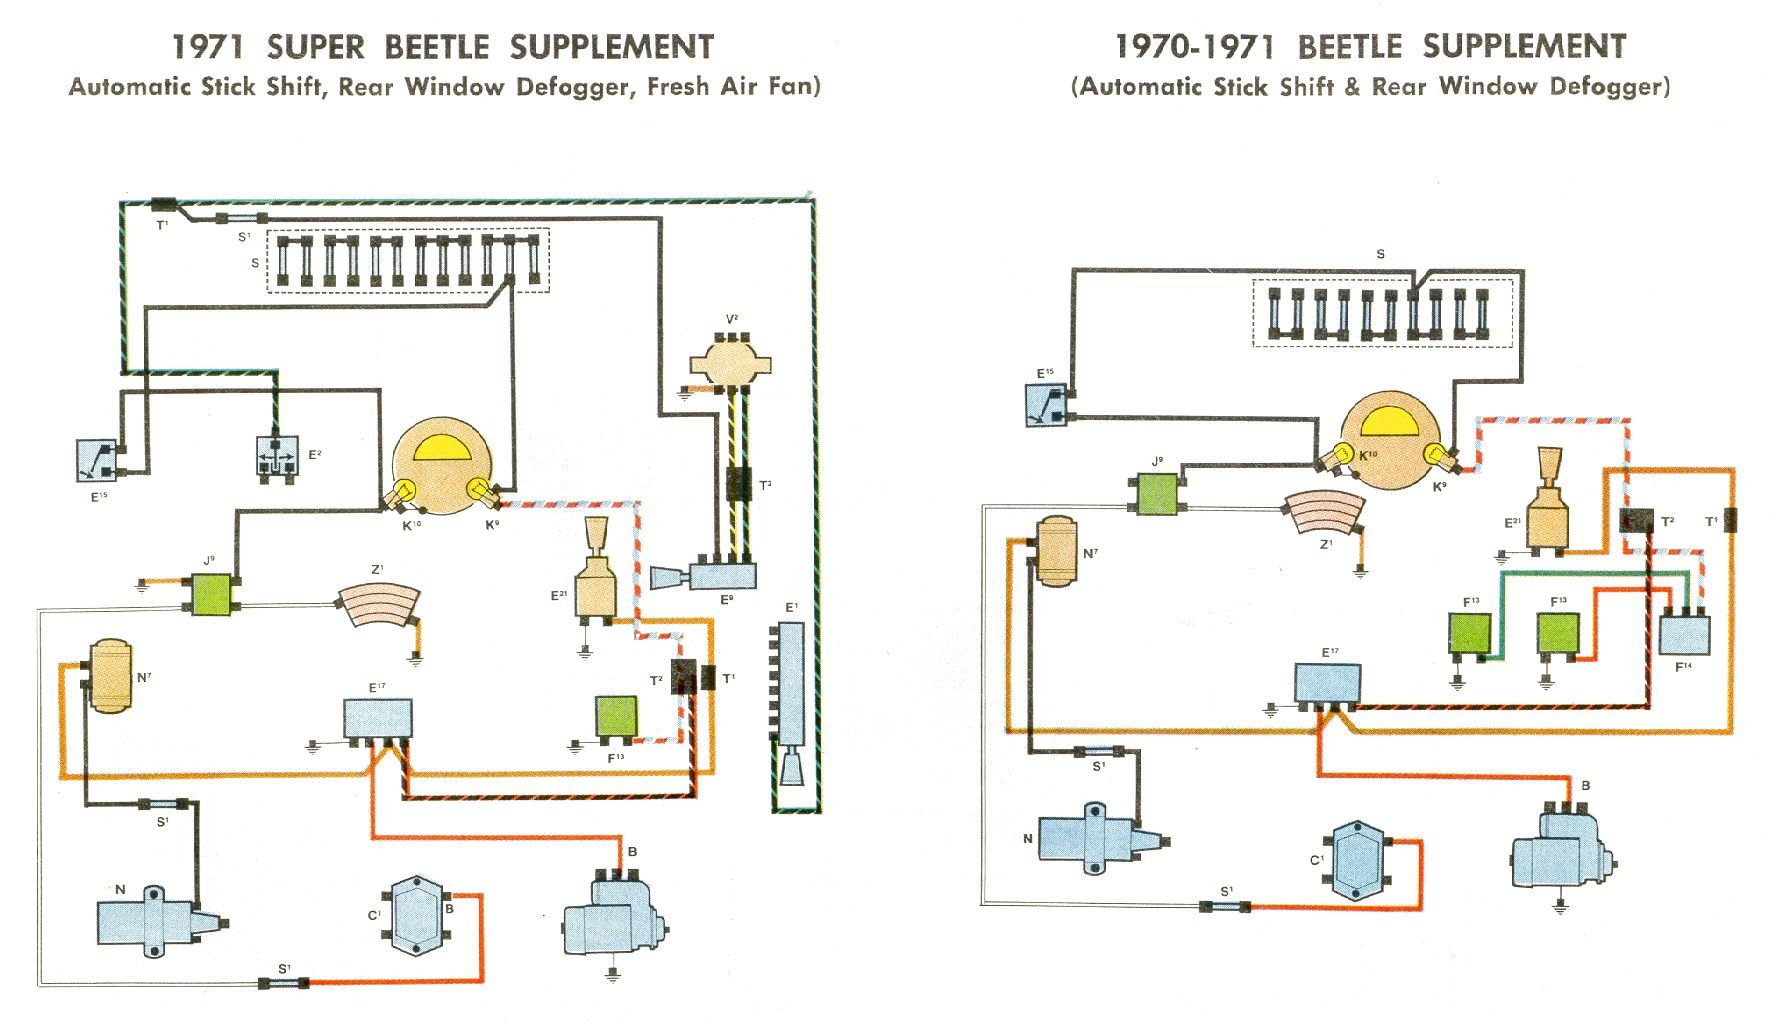 bug_7071_supplement diagram of 1972 vw bug engine on diagram download wirning diagrams Super Beetle Starter at gsmx.co